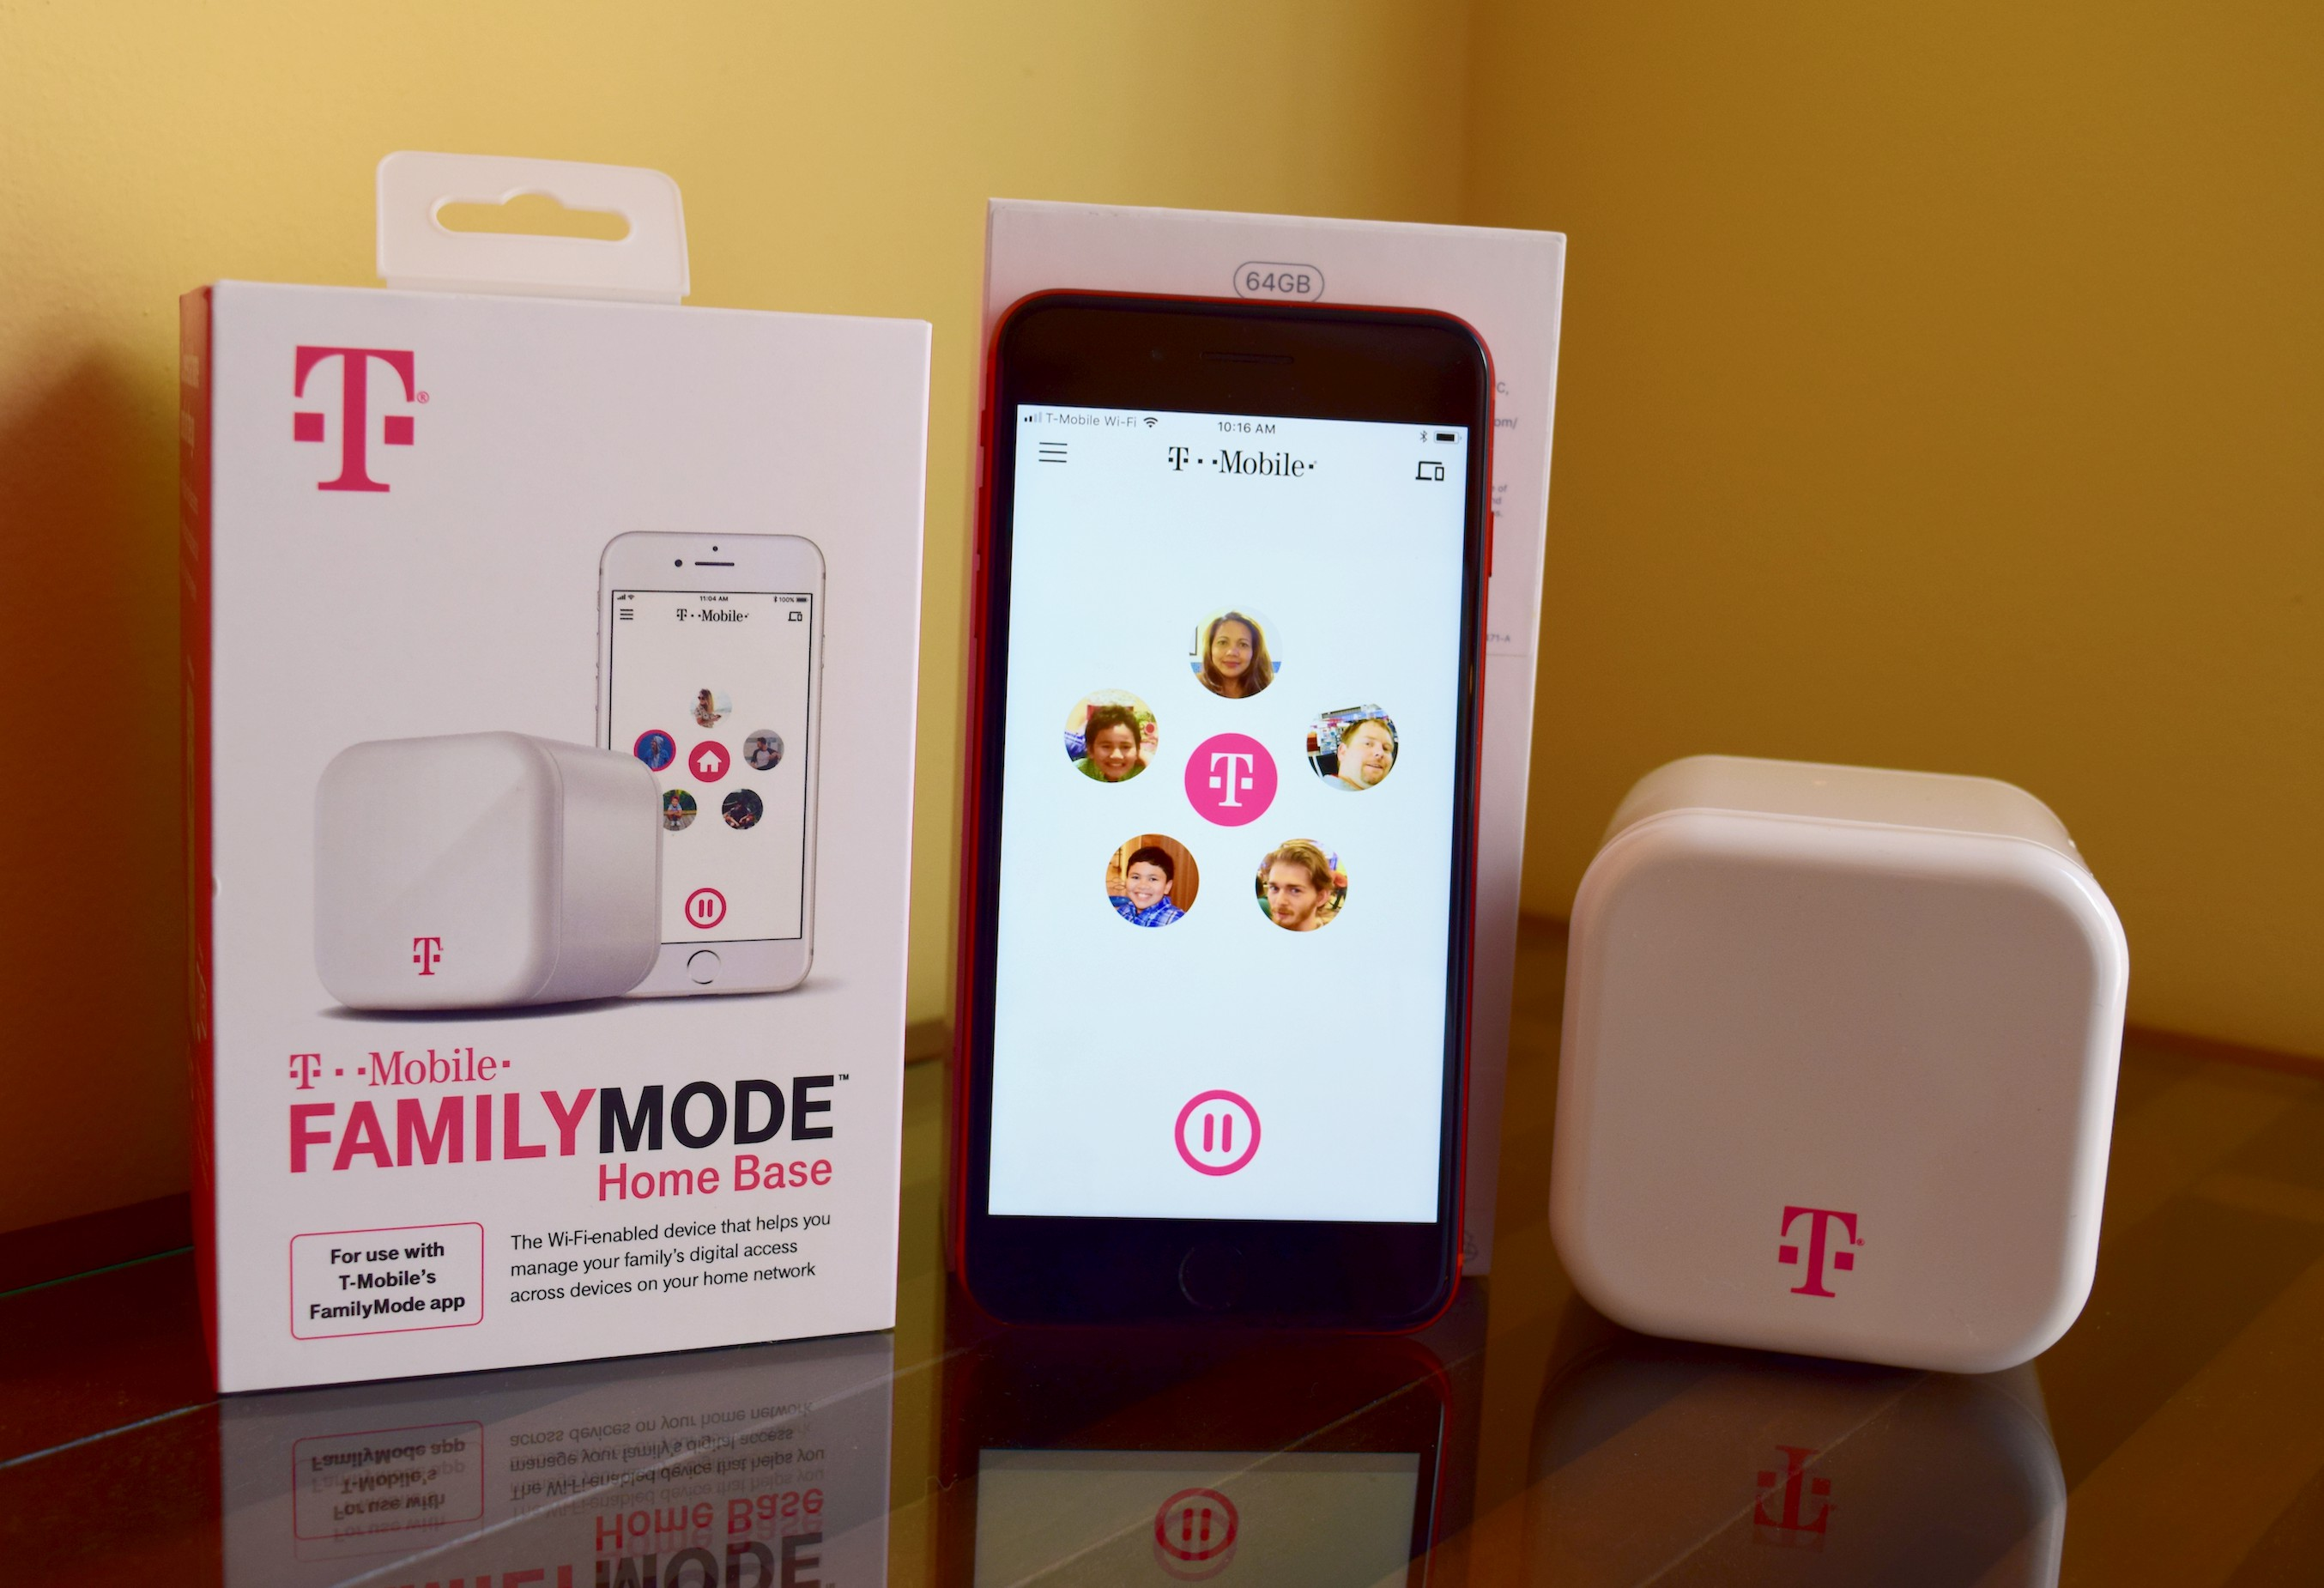 While the carriers' solutions only cover the devices connected to their networks,T-MobileFamilyMode lets us do all these on our kids' phones, tablets, gaming consoles, laptops, smart TVs and the other Wi-Fi-connected devices in our home.